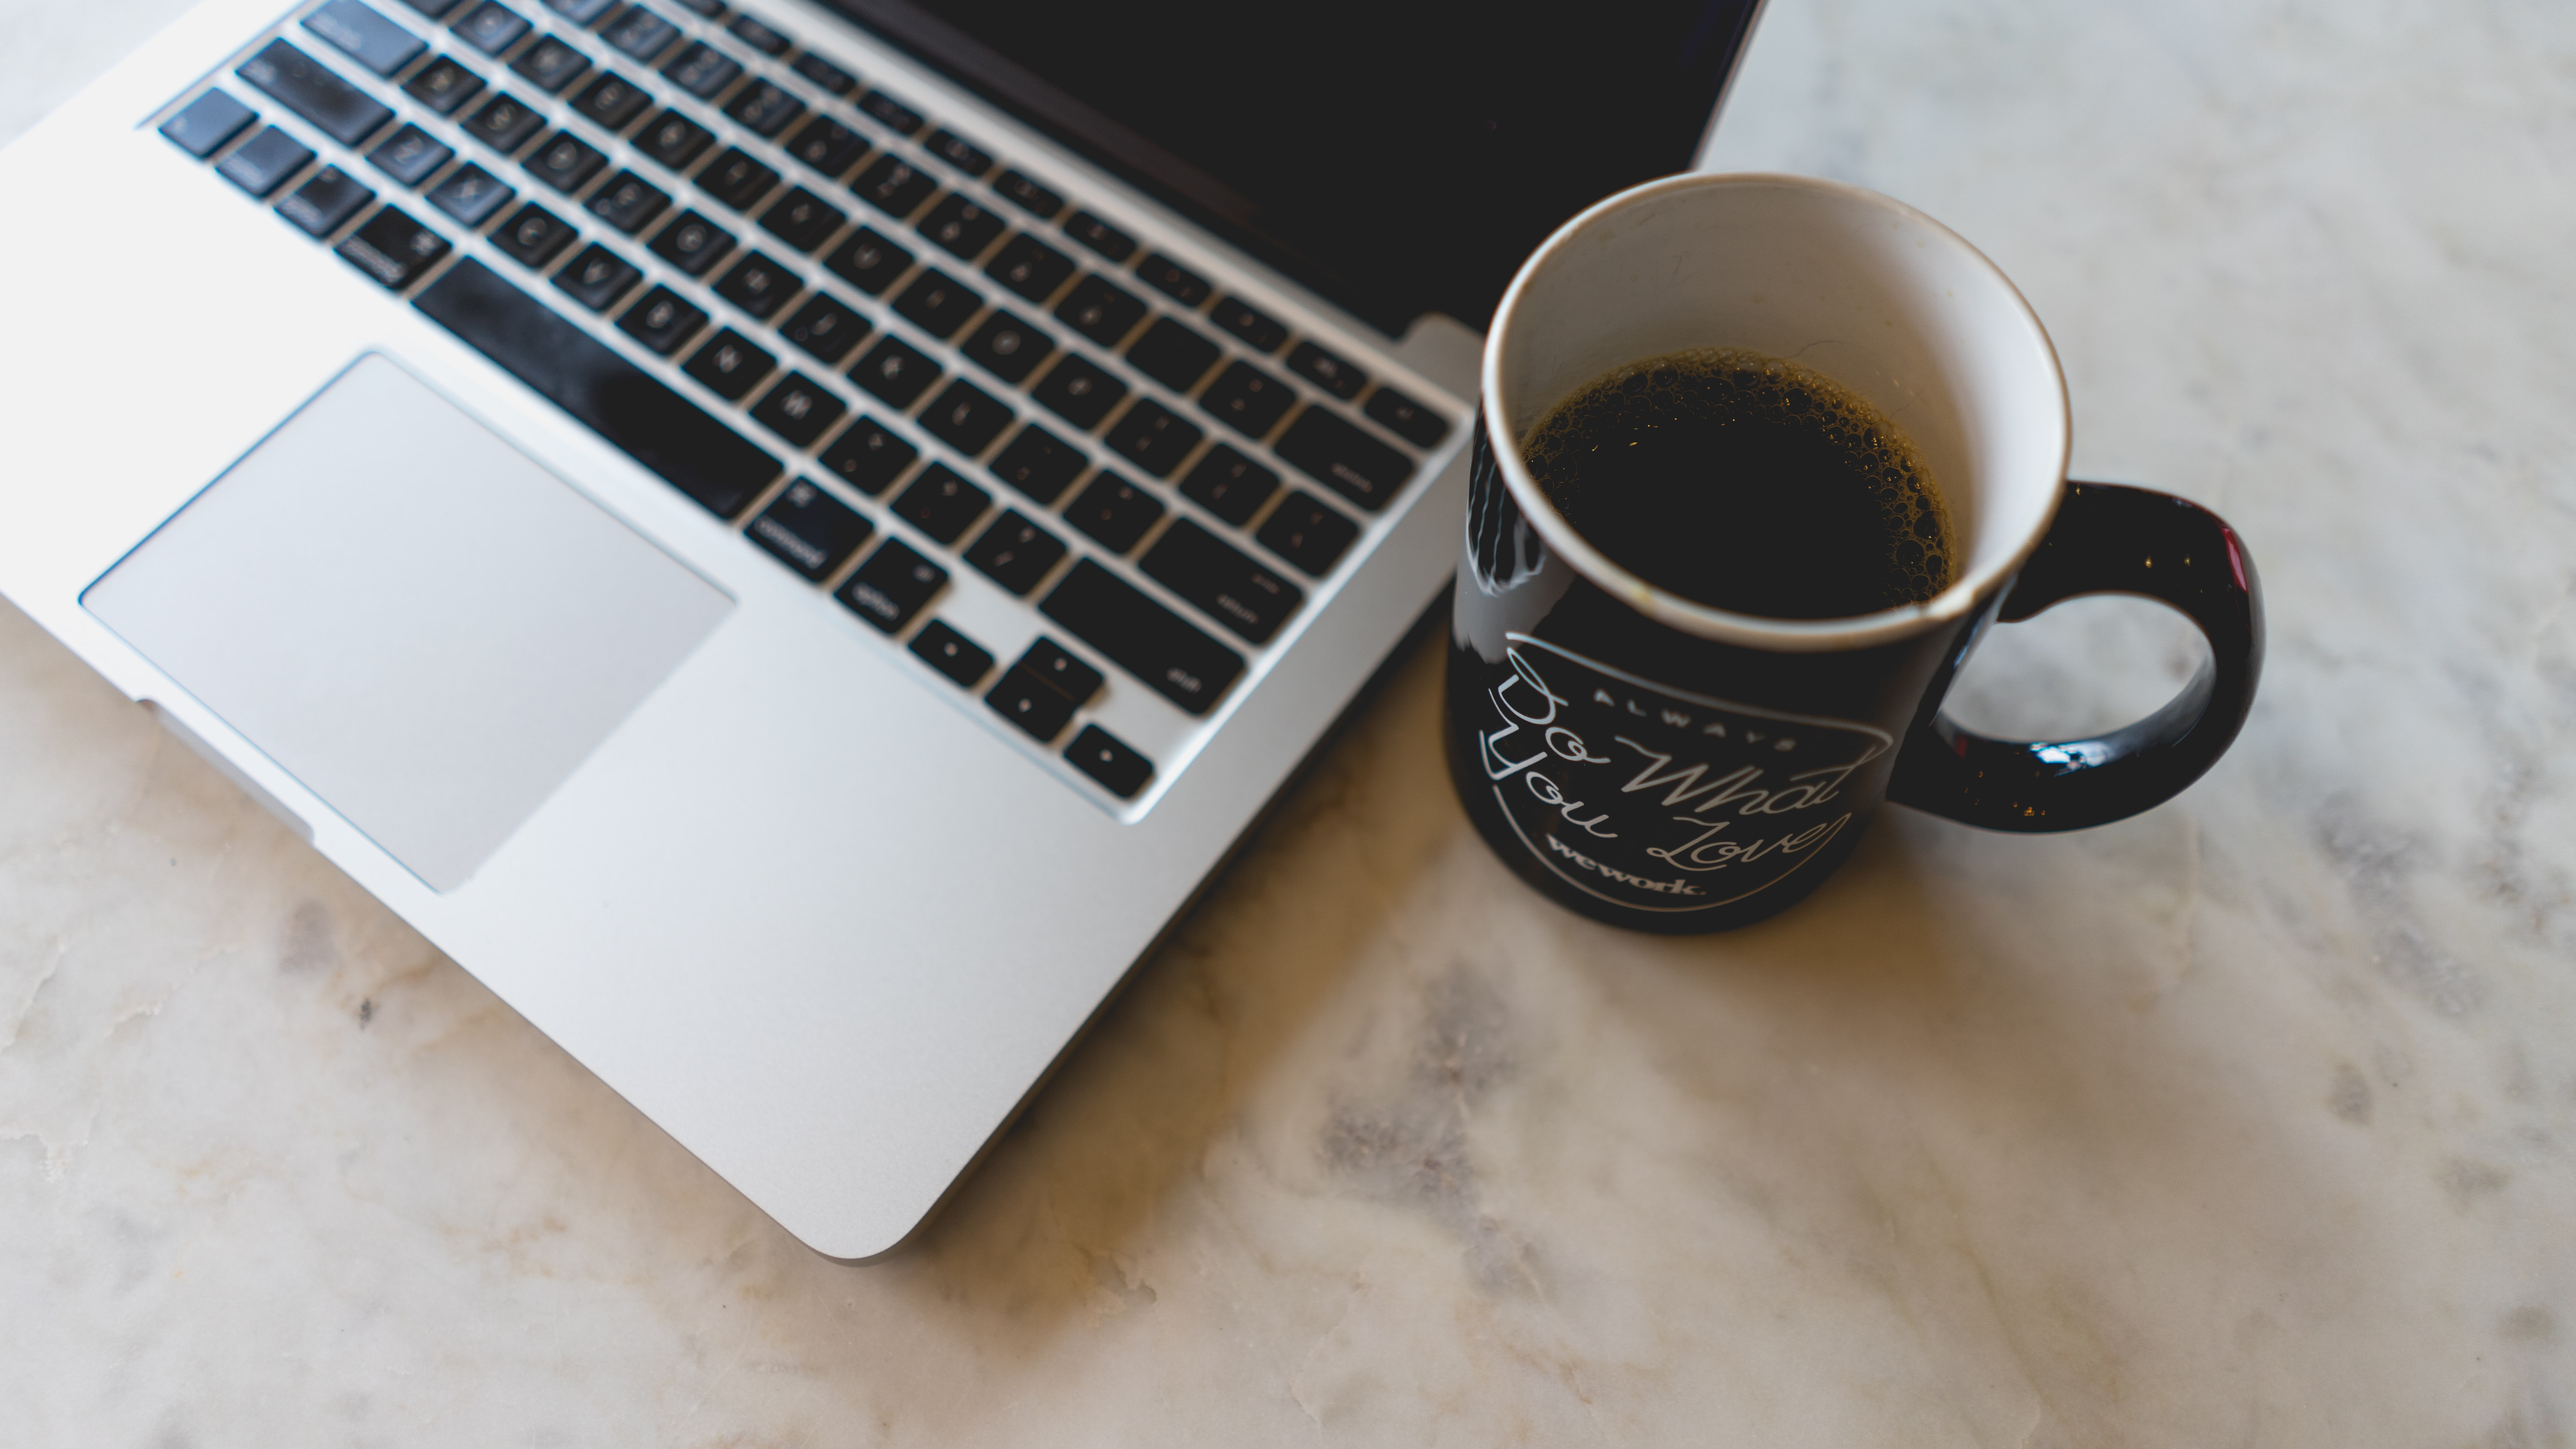 A MacBook computer and a cup of coffee